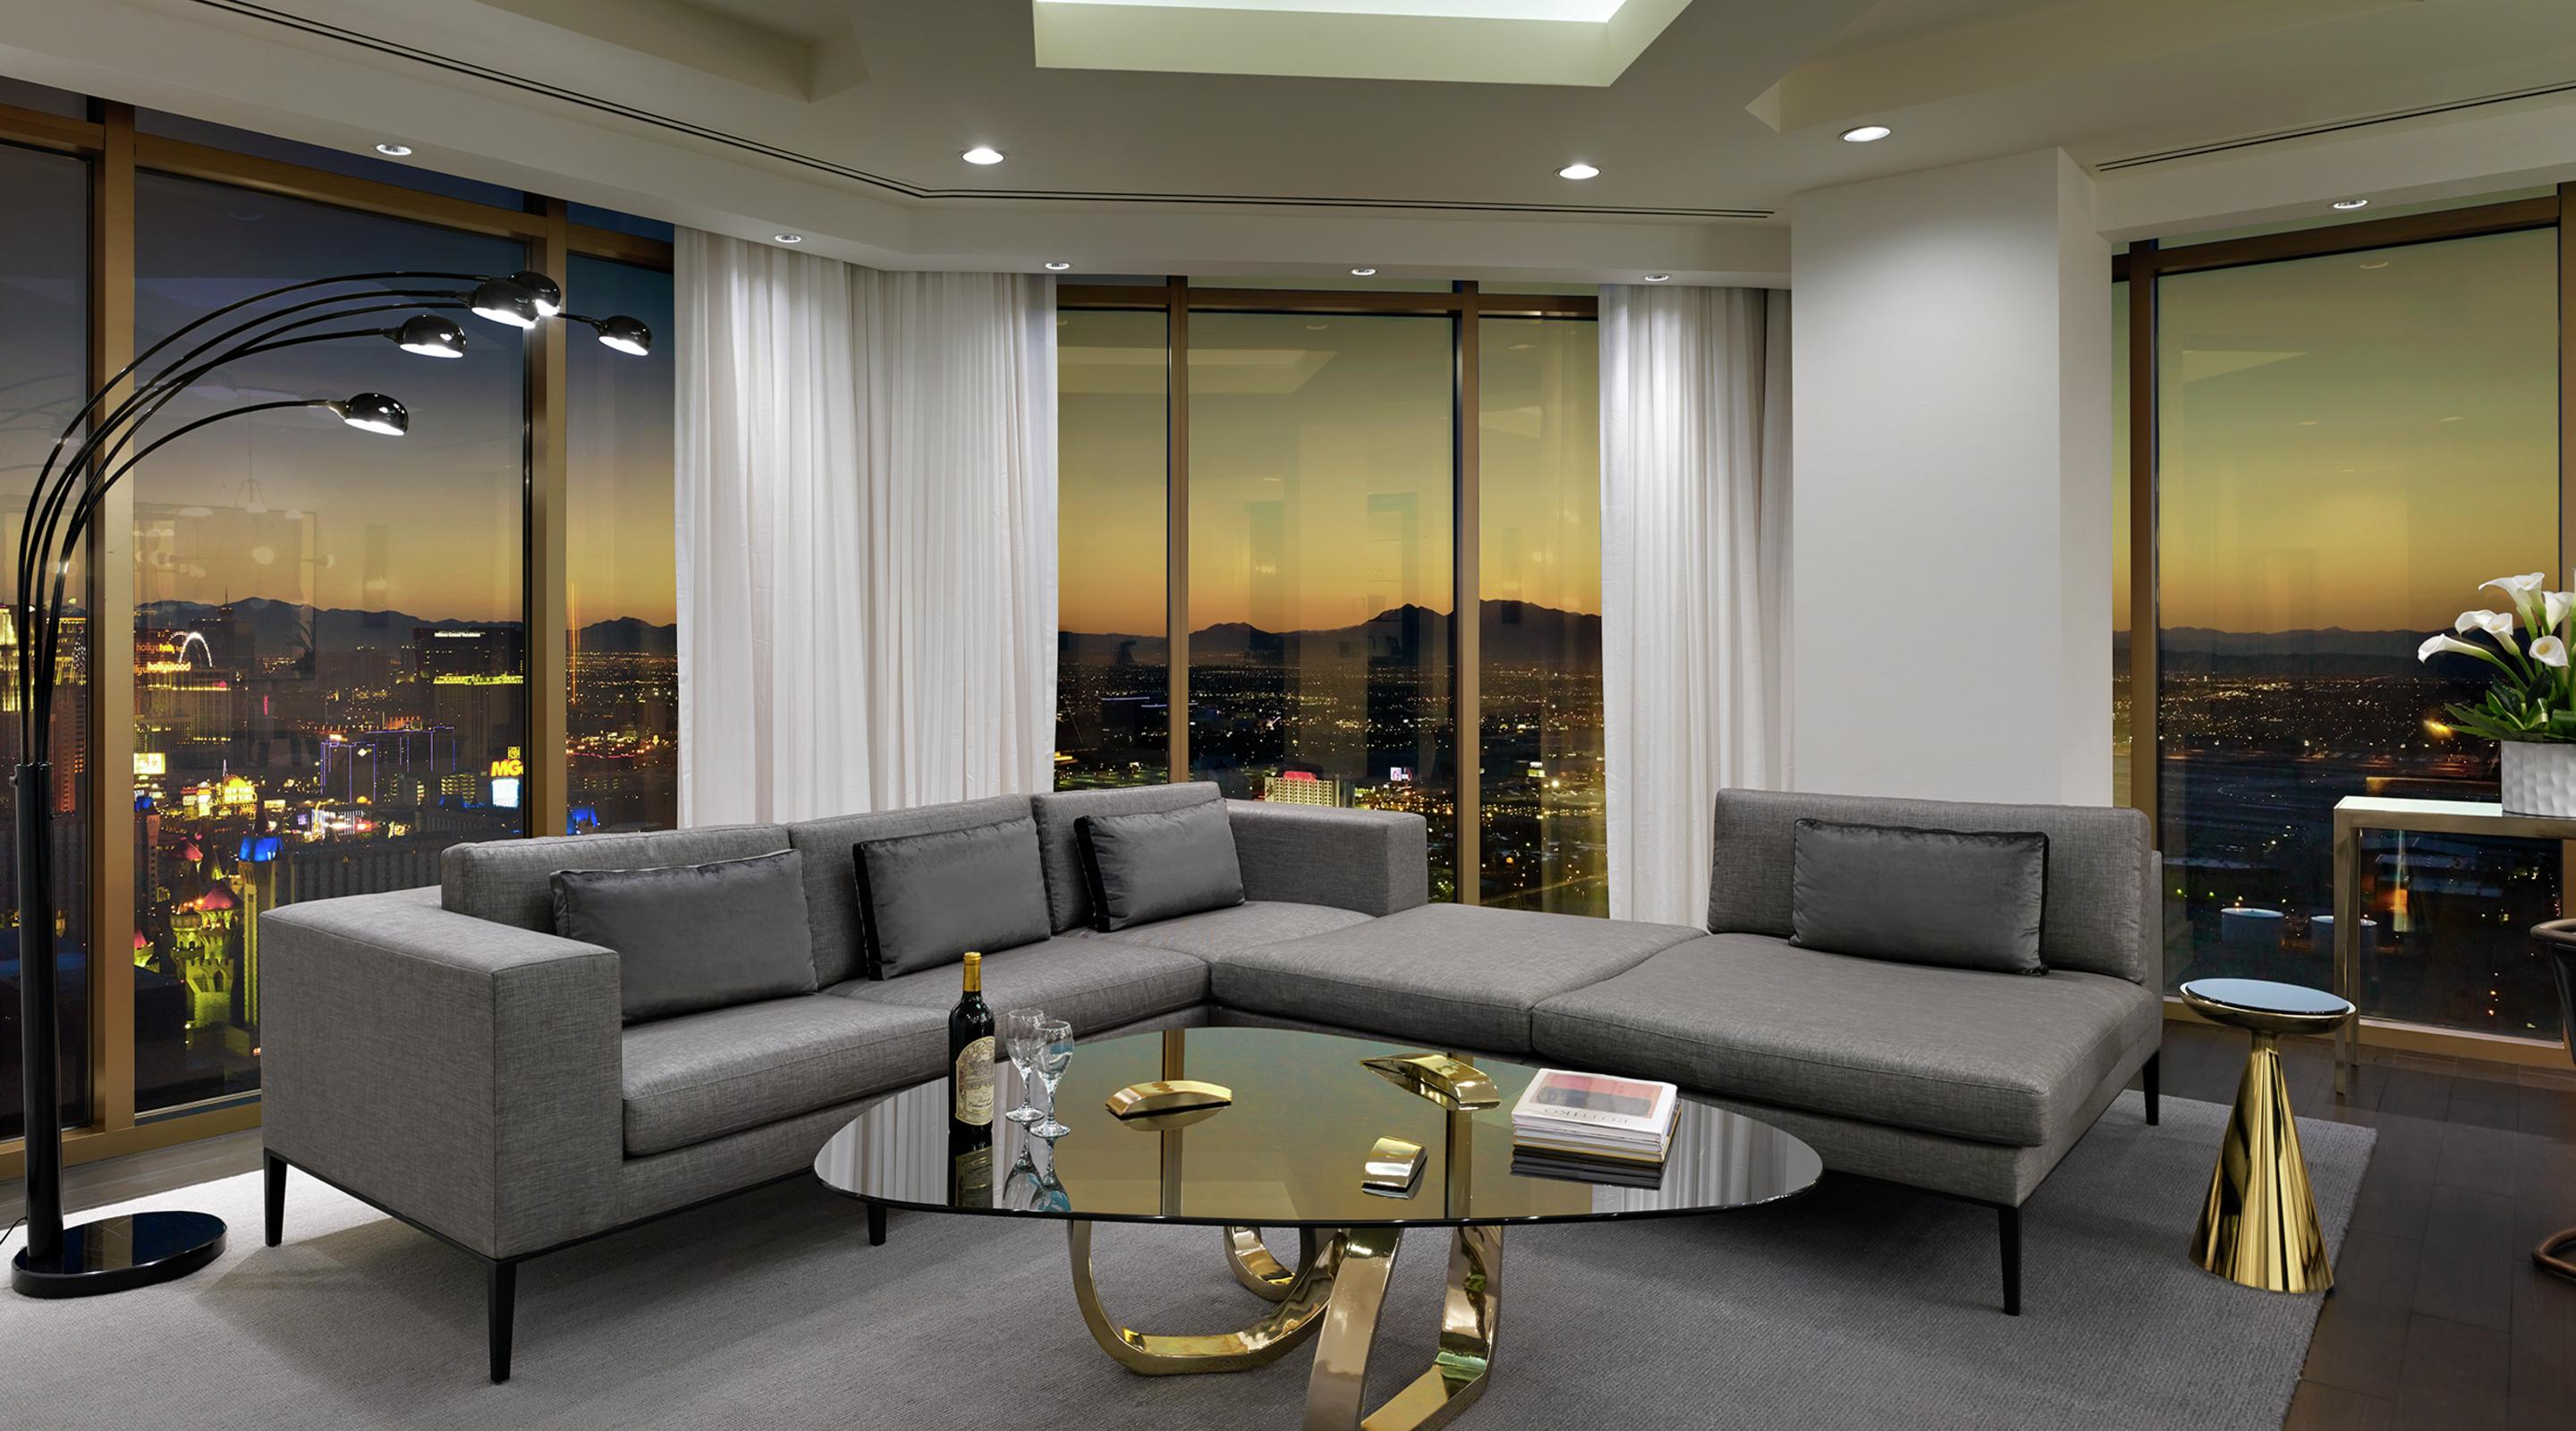 Las Vegas Hotels Suites 3 Bedroom Penthouse Superior Suite Delano Las Vegas